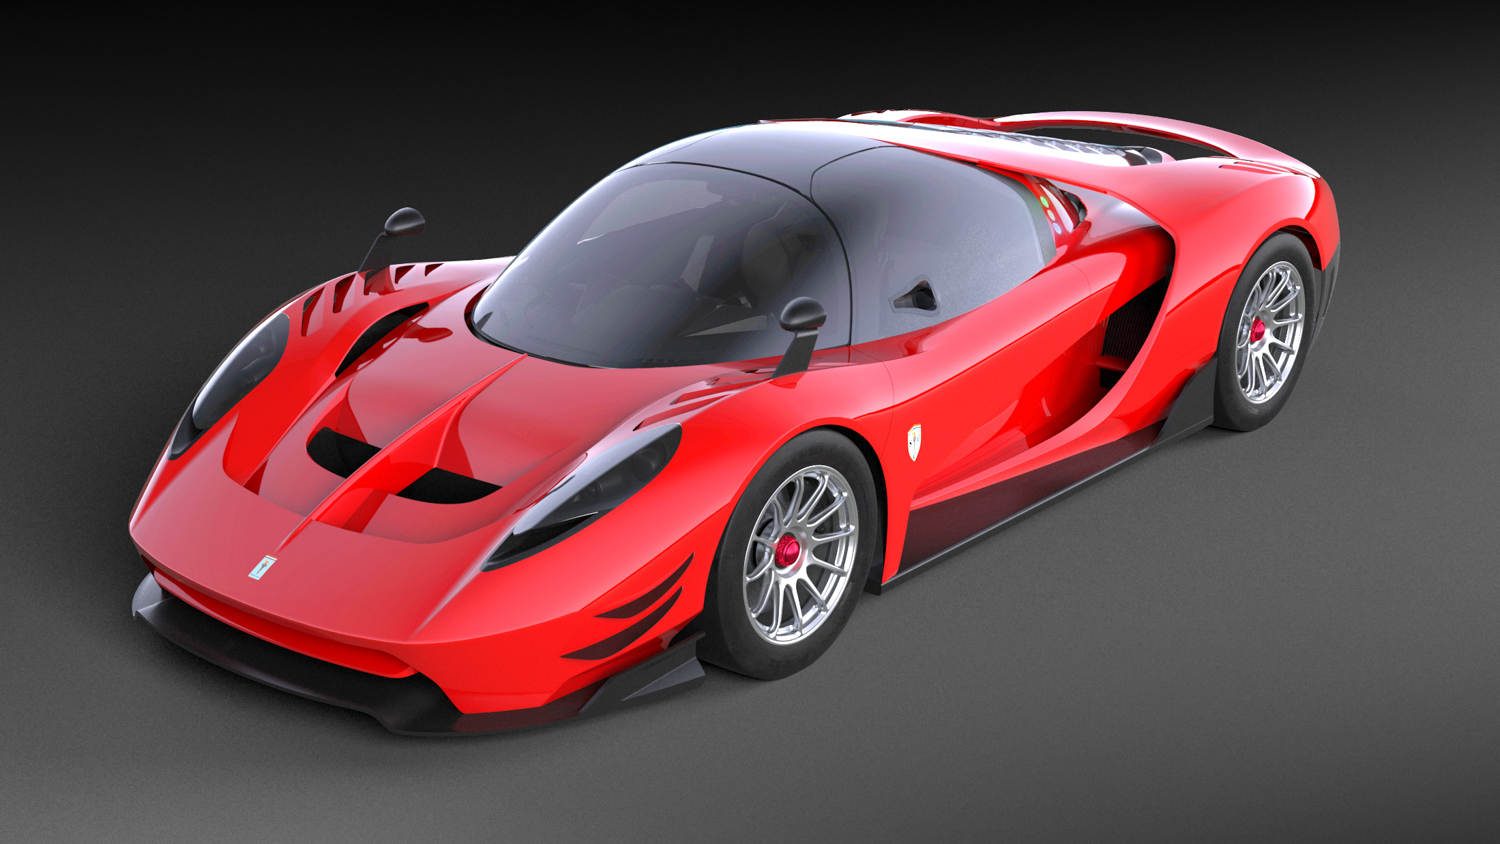 scg004 red 3/4 front